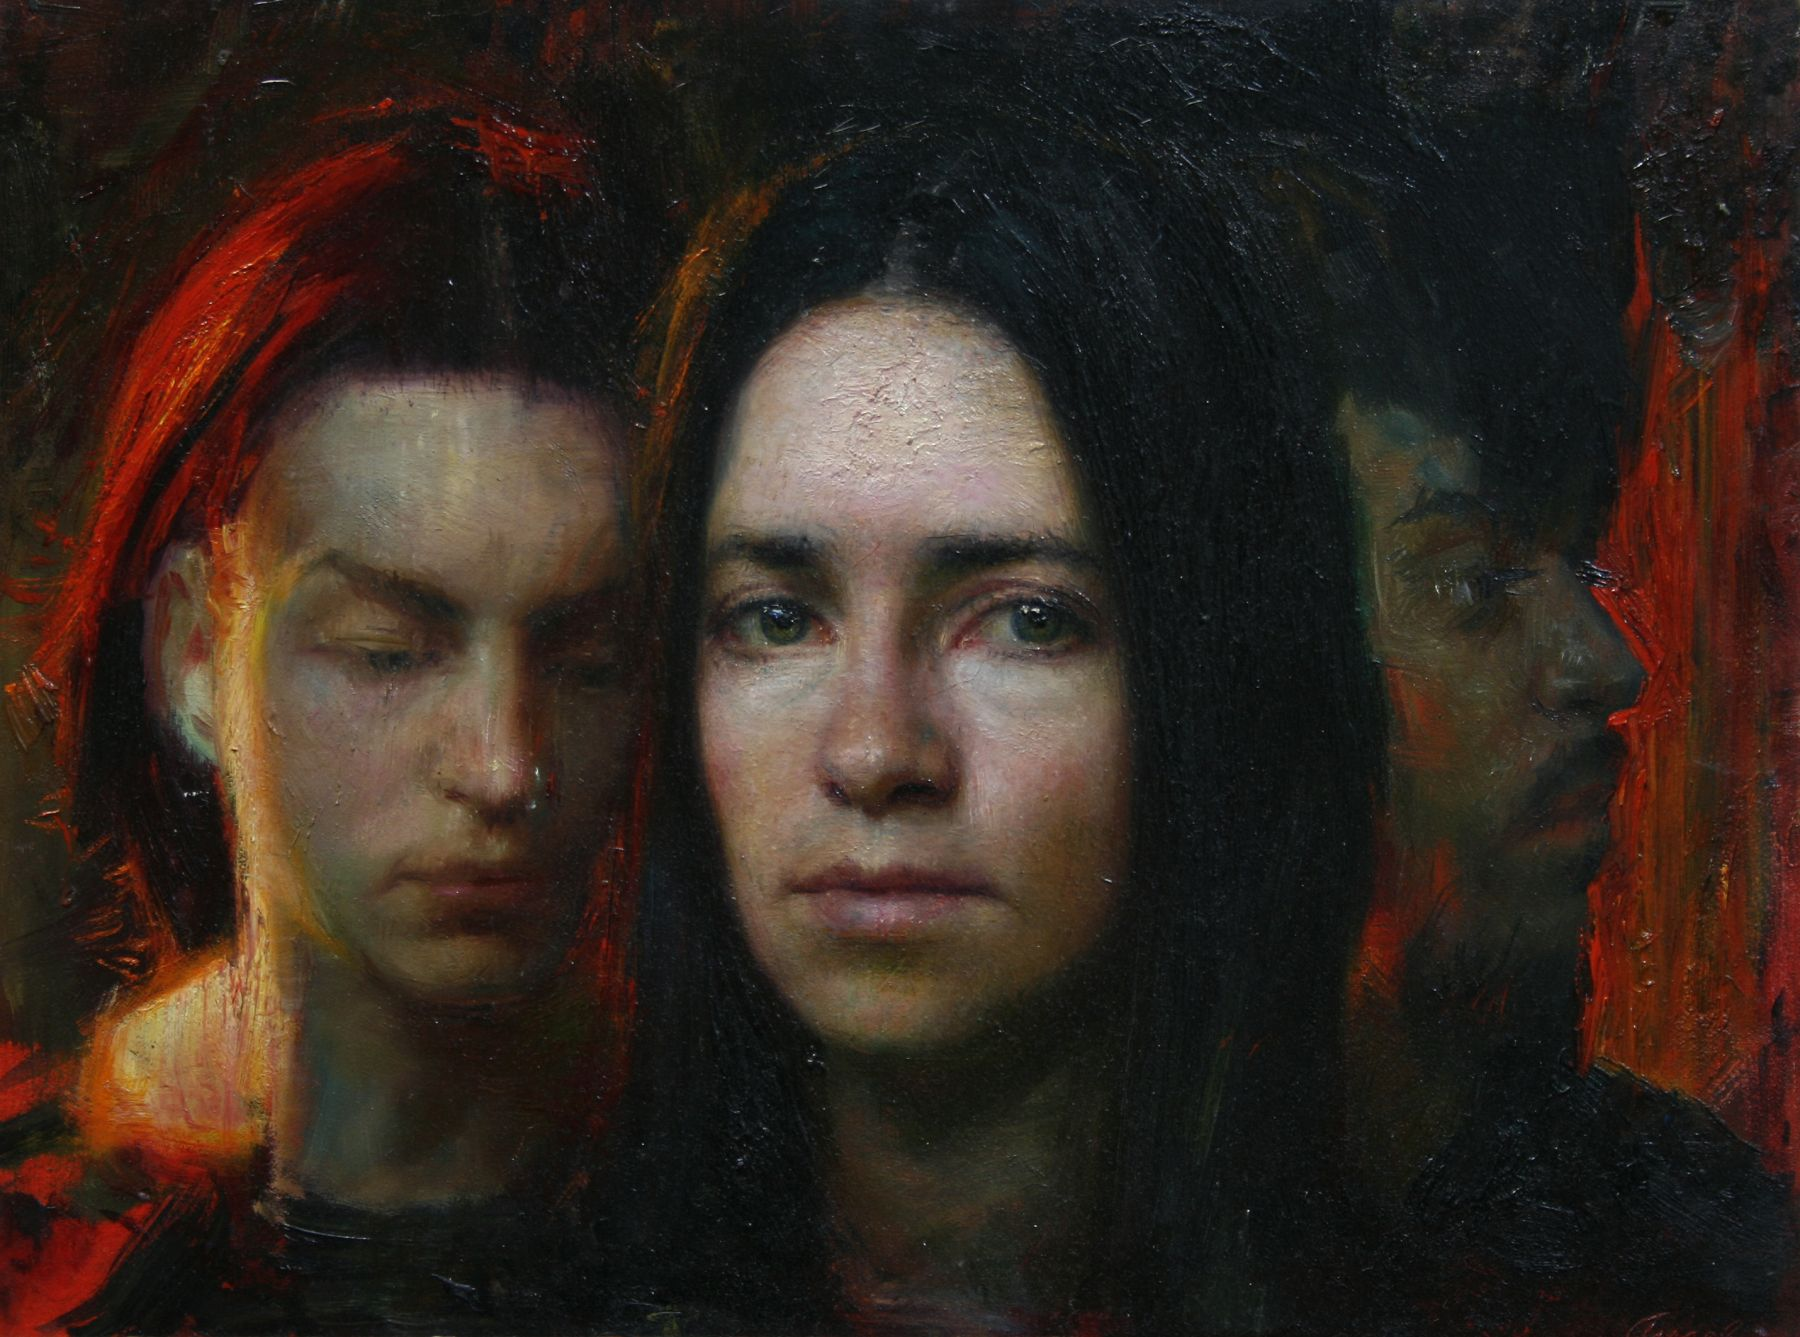 Steven Assael, Female Portrait, 2008, oil on canvas, 12 x 16 inches